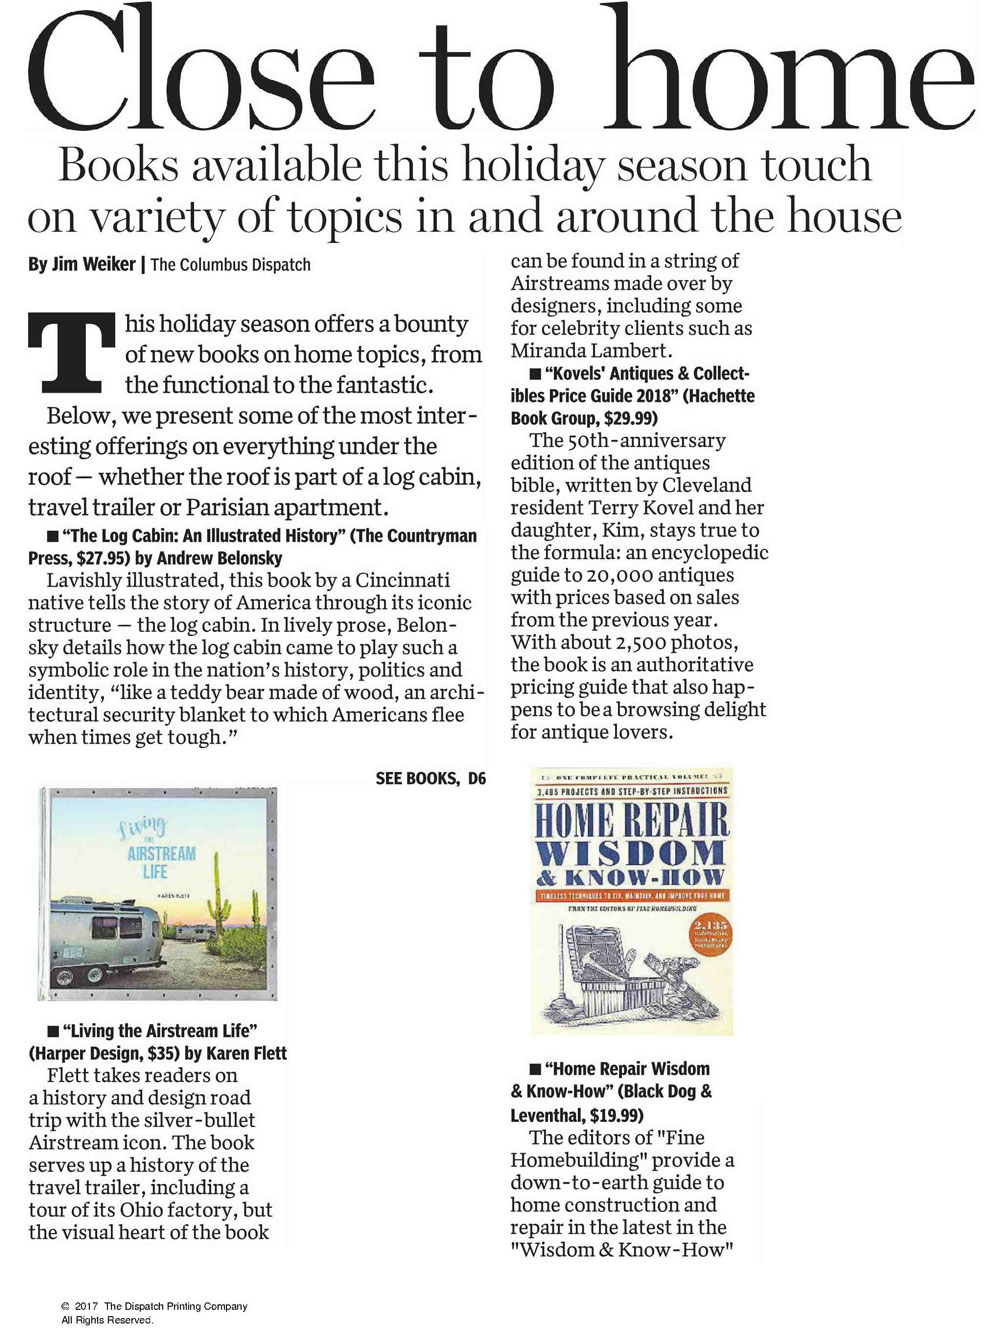 Close to home - The Columbus Dispatch Article